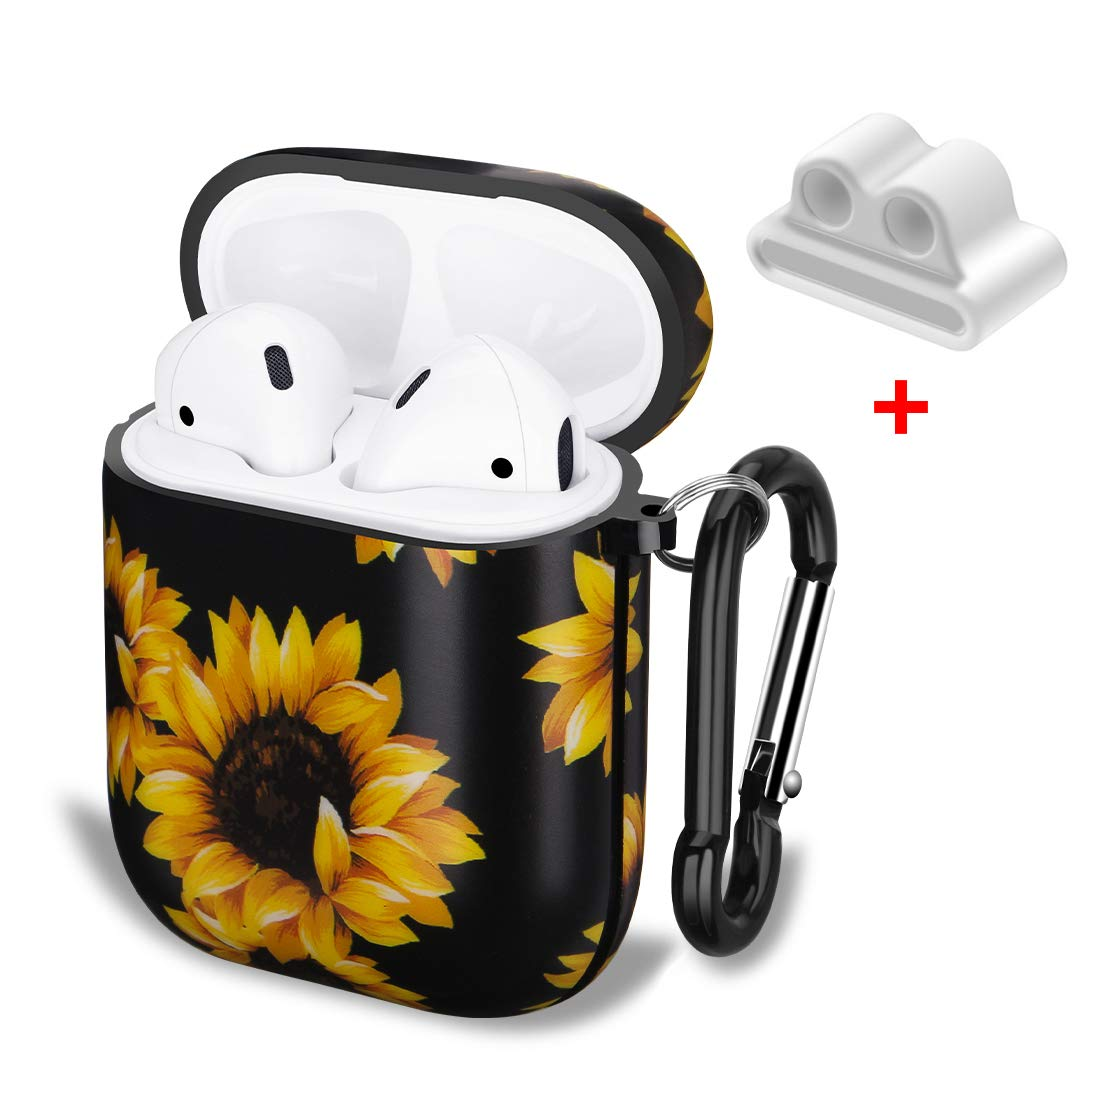 Airpods Case, SANKTON Protective Shockproof TPU Gel Case with Printing for Airpods 1st/2nd Charging Case (Sunflower)